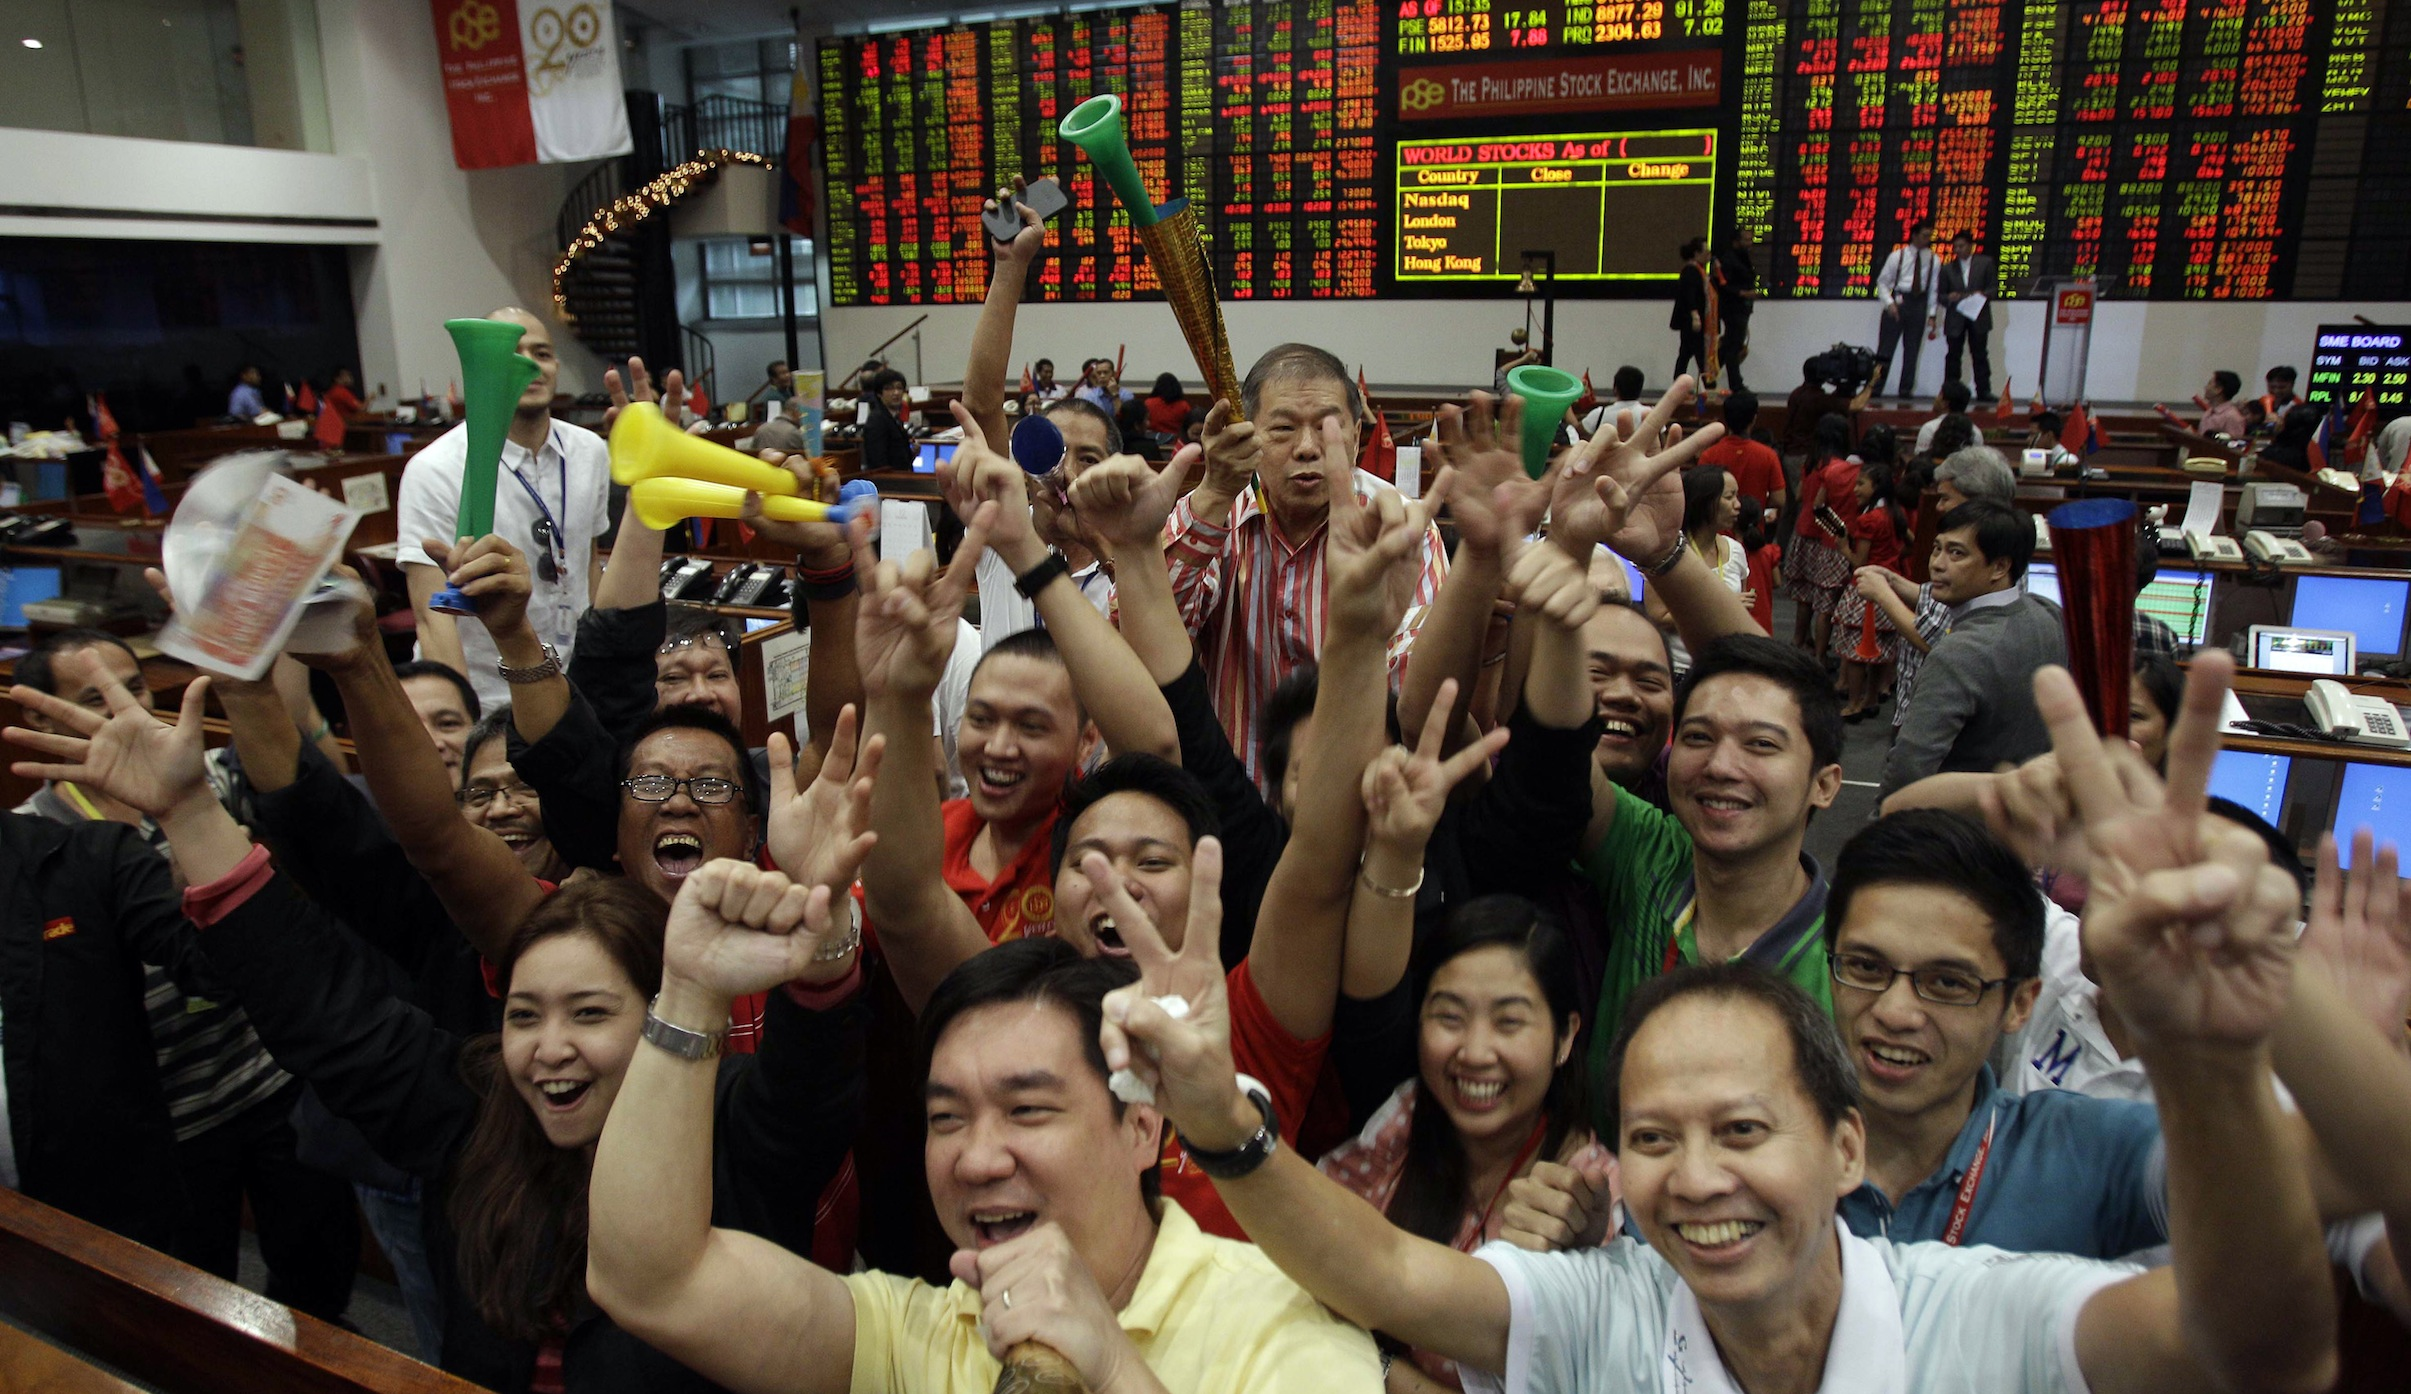 Filipino traders react in front of photographers during the last day of trading this year at the Philippine Stock Exchange in the financial district of Makati, south of Manila, Philippines on Friday Dec. 28, 2012. The Philippine Stock Exchange index was up 0.31% or 17.84 points to close at 5,812.73.